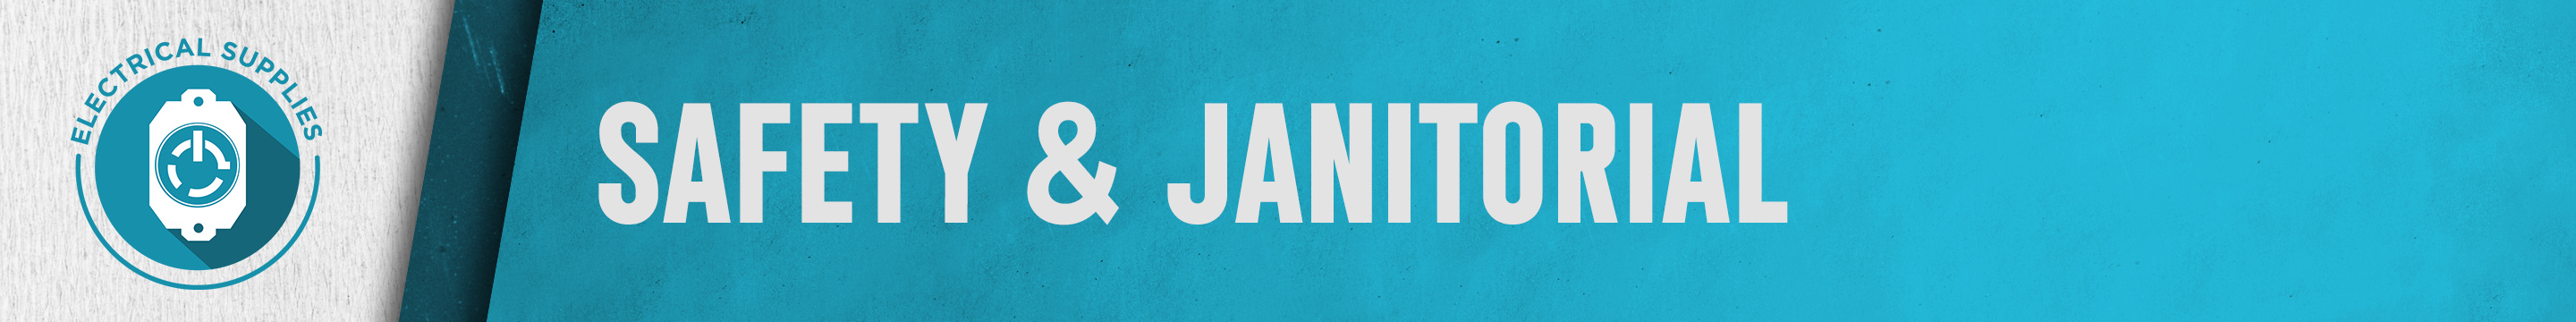 Safety and Janitorial